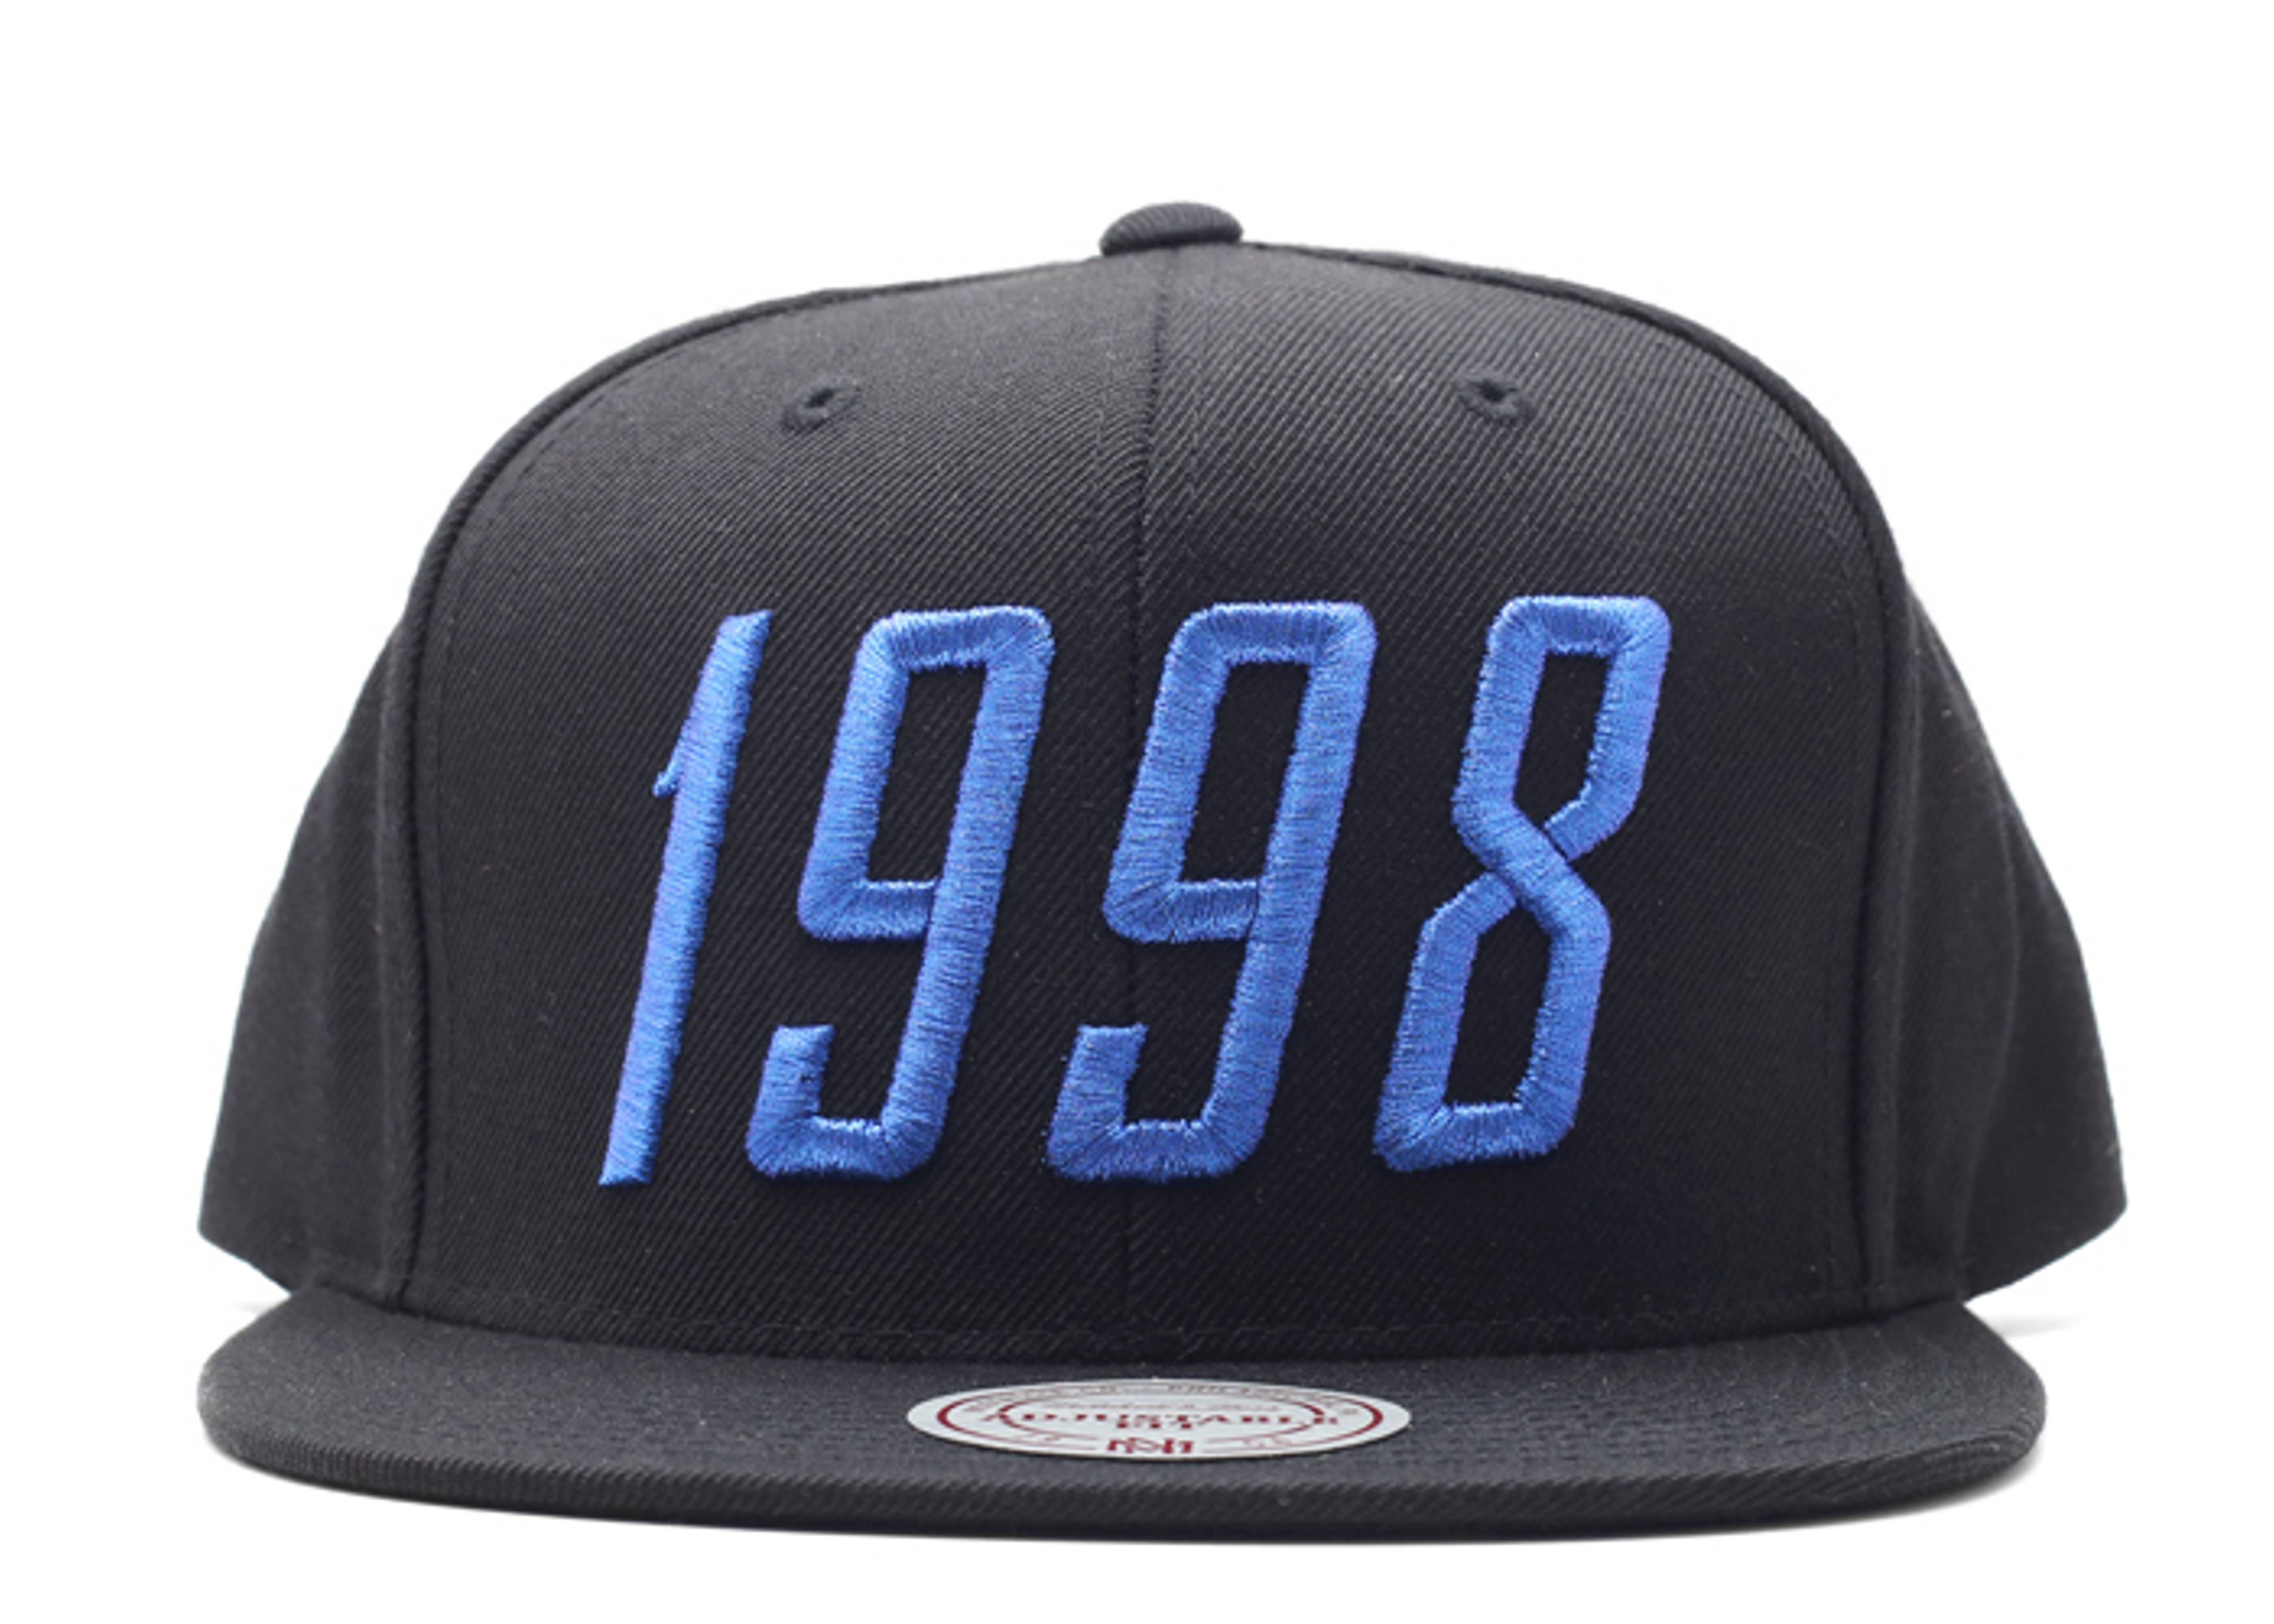 1998 all-star game snap-back